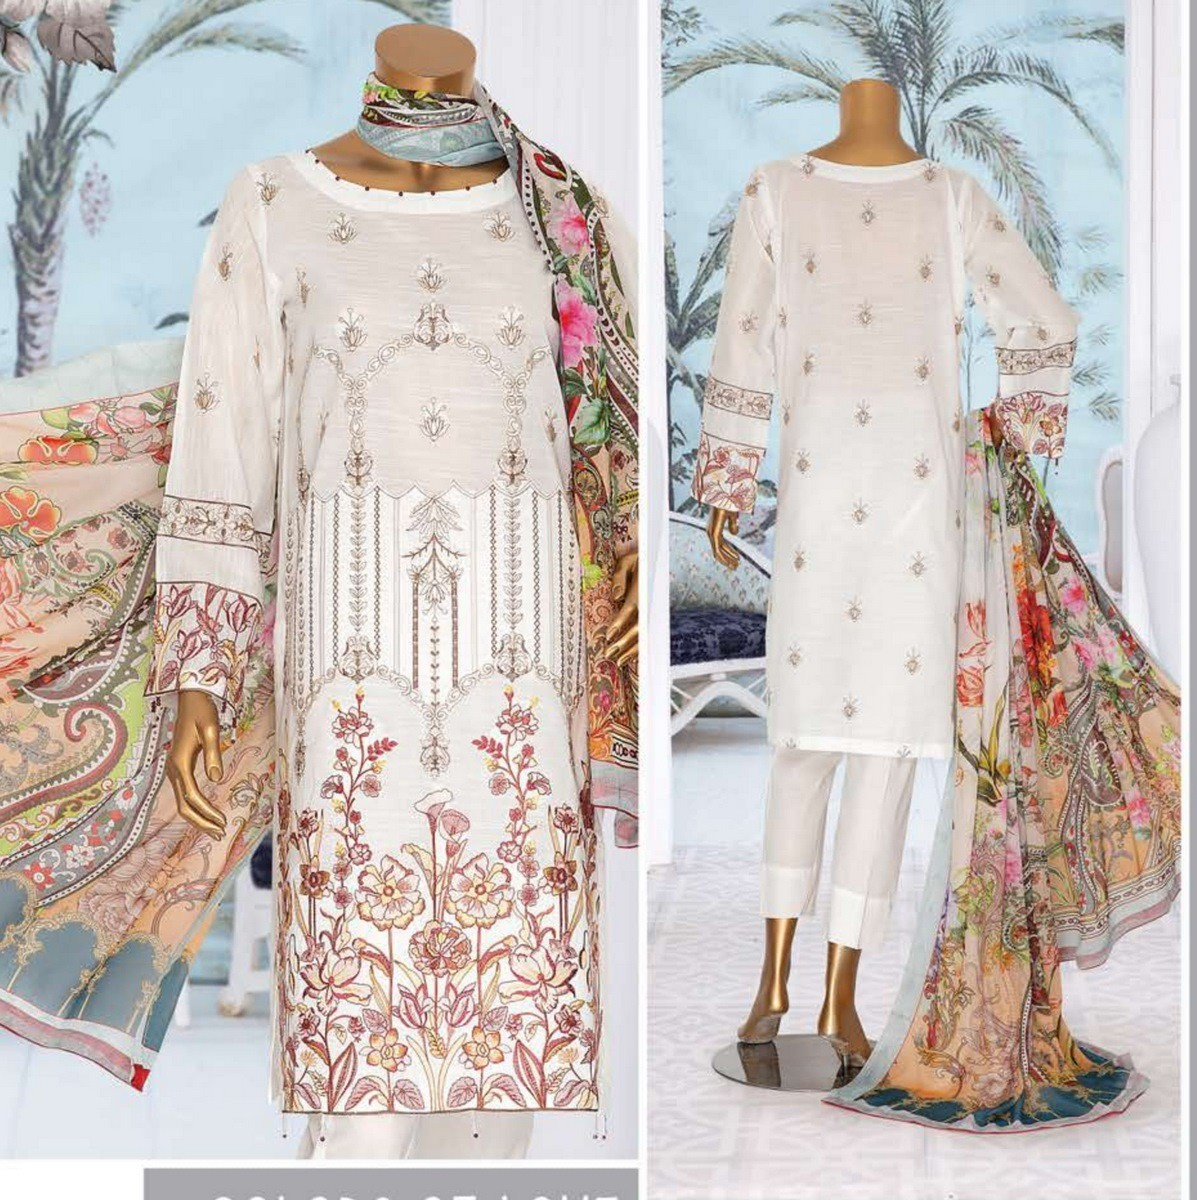 /2020/09/javed-arts-haniya-printed-and-unstitched-embroidered-lawn-collection-d-02-image3.jpeg